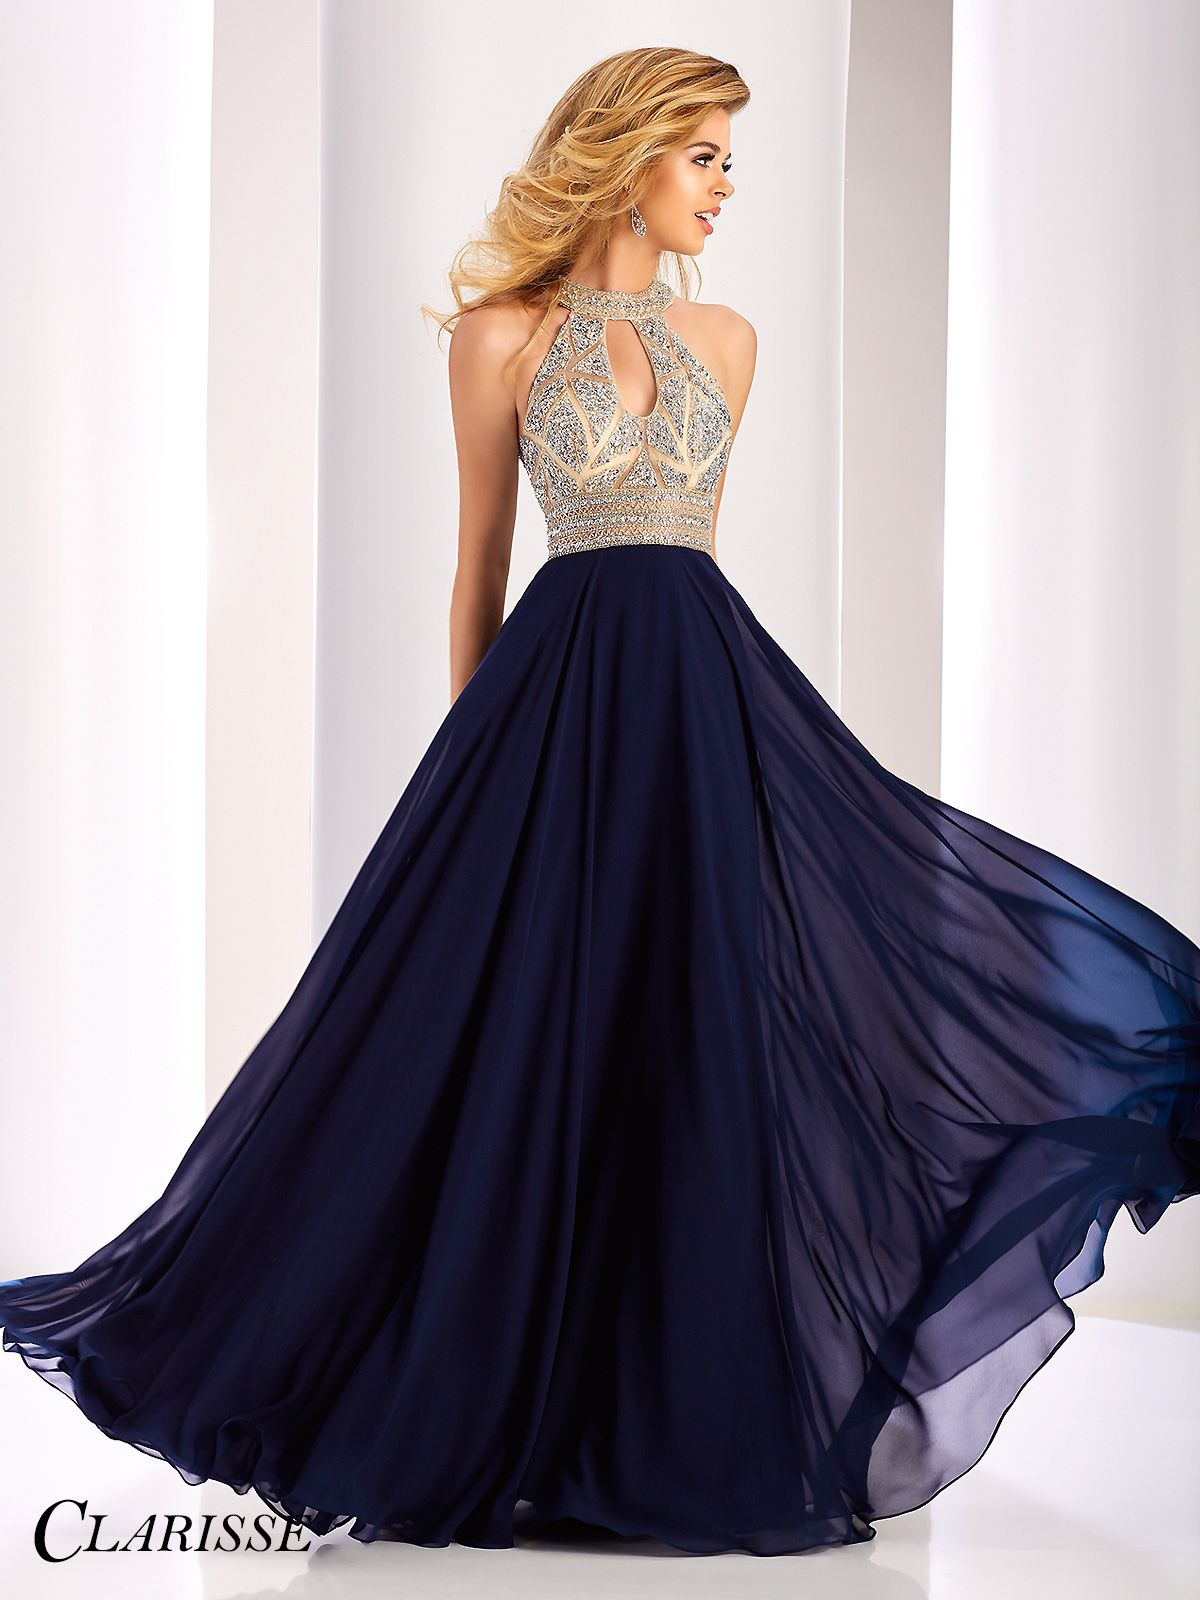 Clarisse prom dress chiffon prom dress featuring a halter